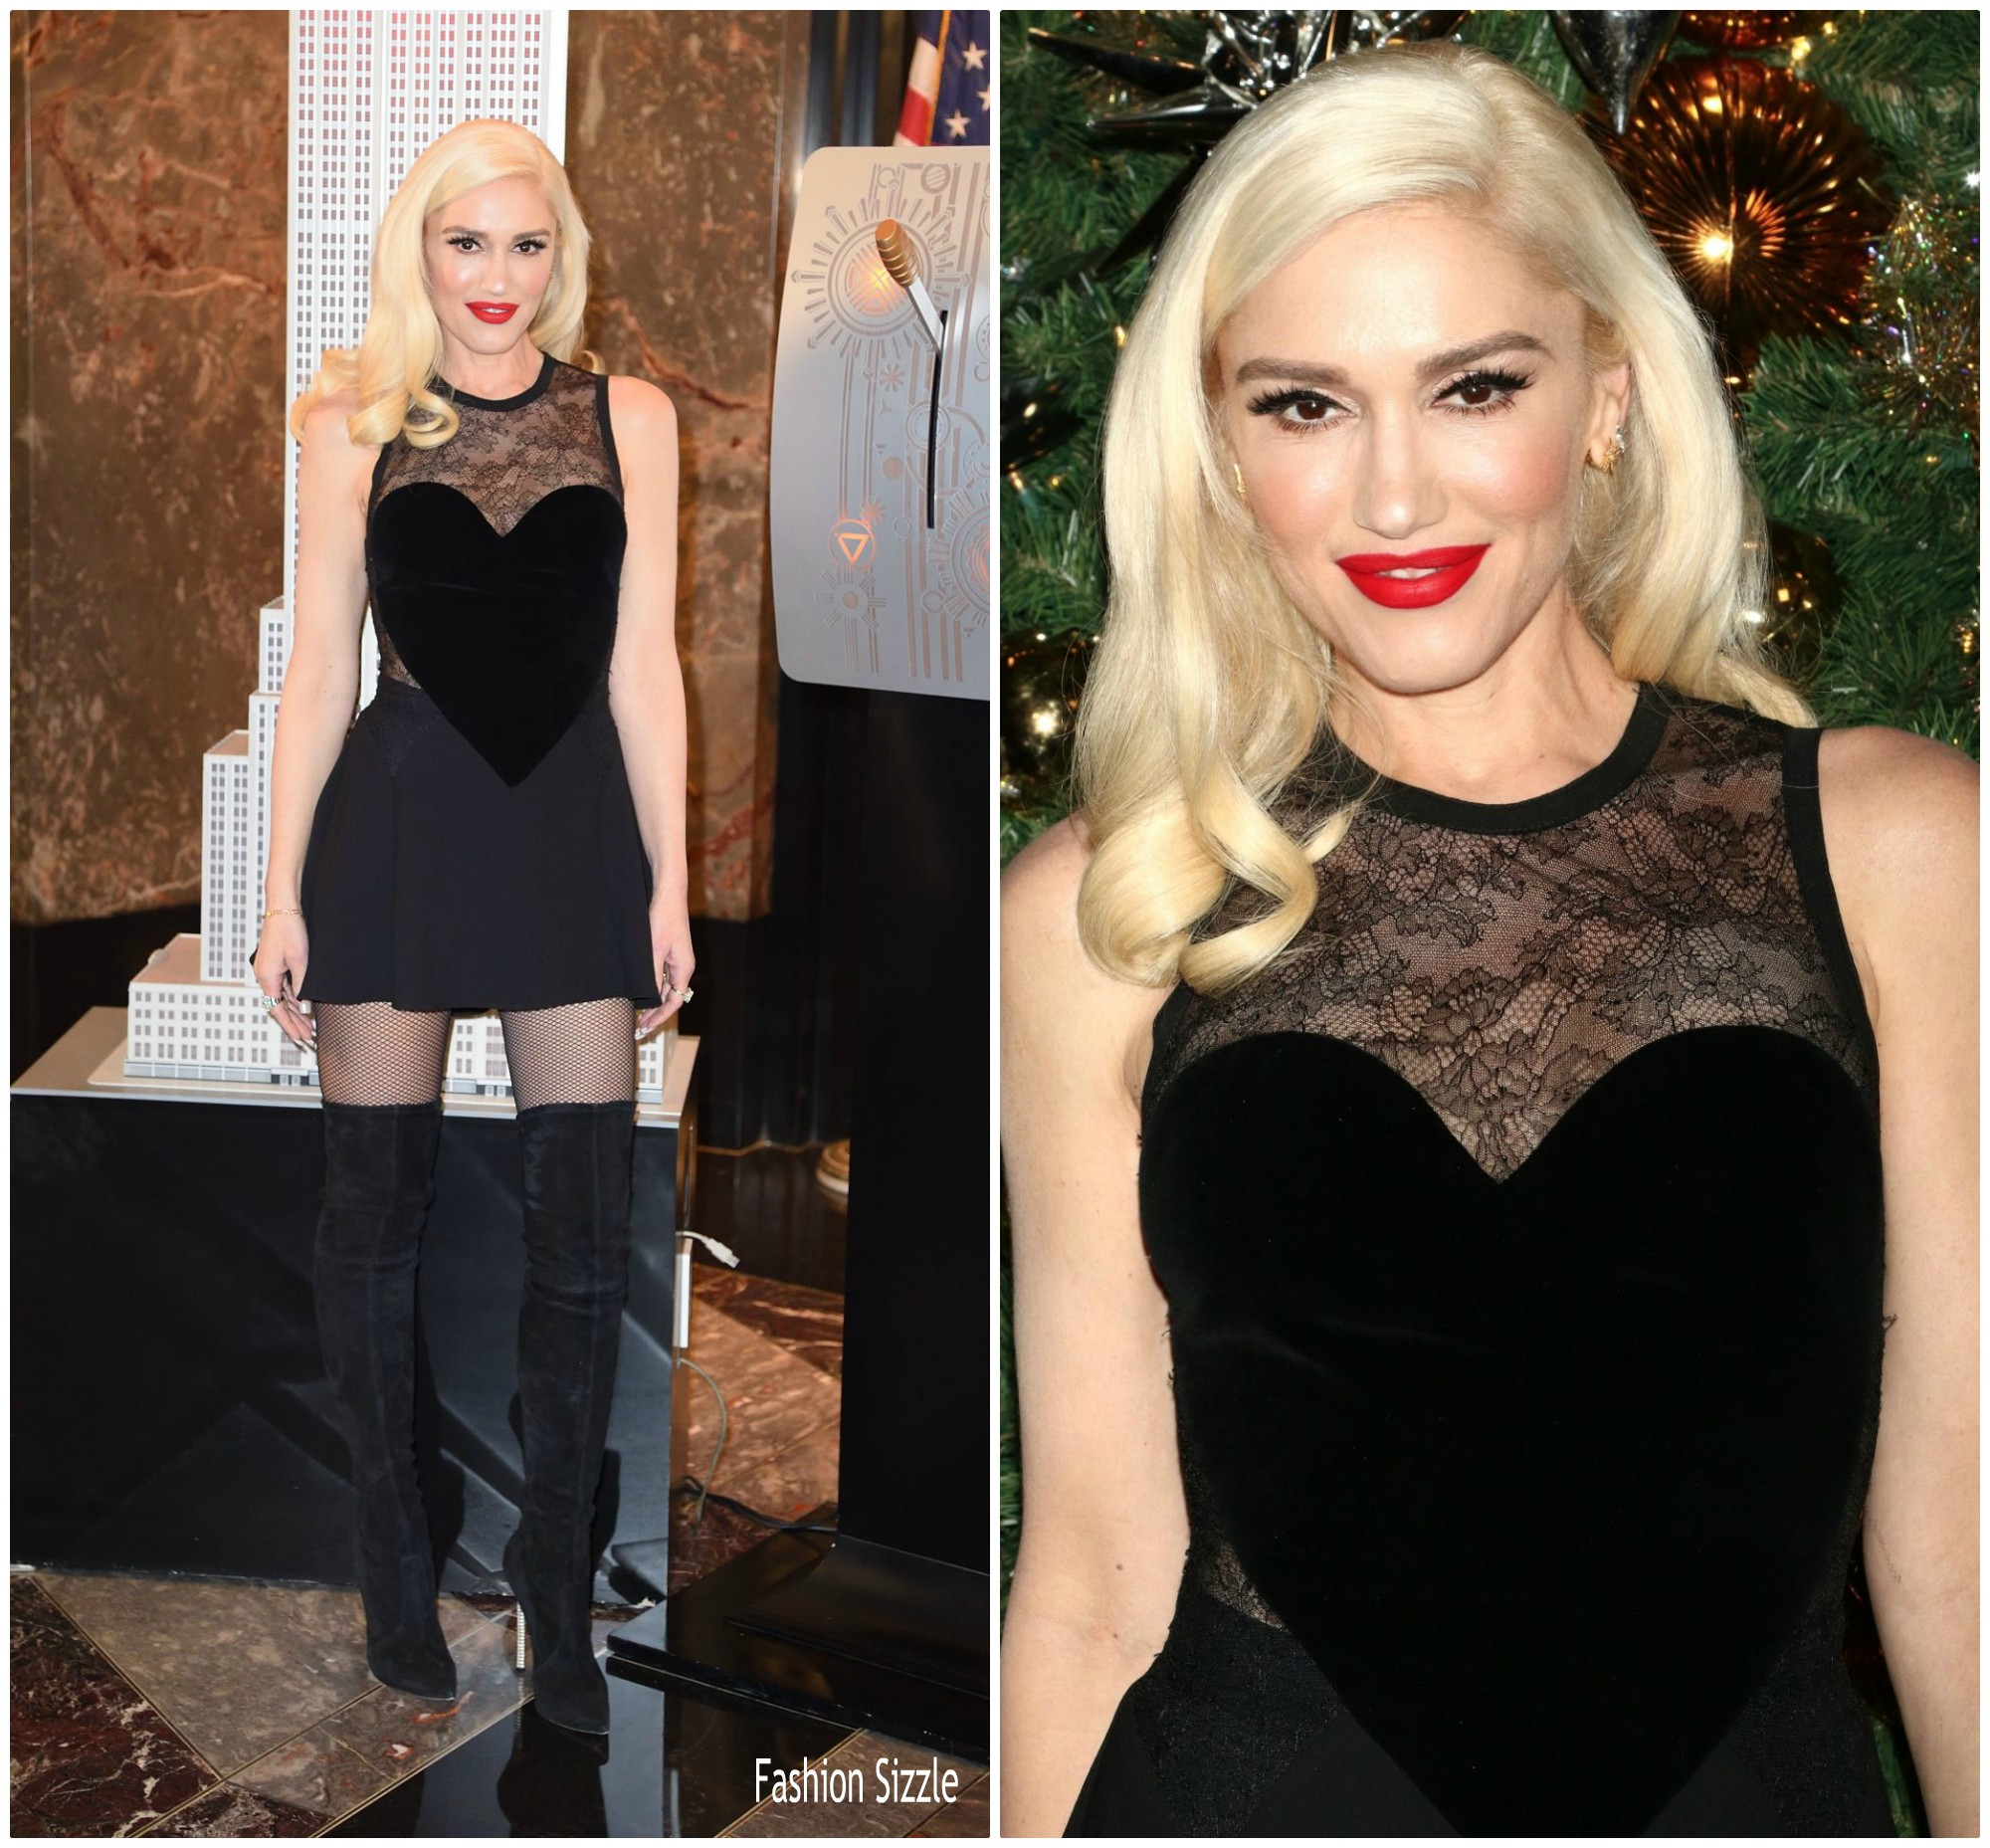 gwen-stefani-in-elie-saab-empire-state-building-lighting-ceremony-in-new-york